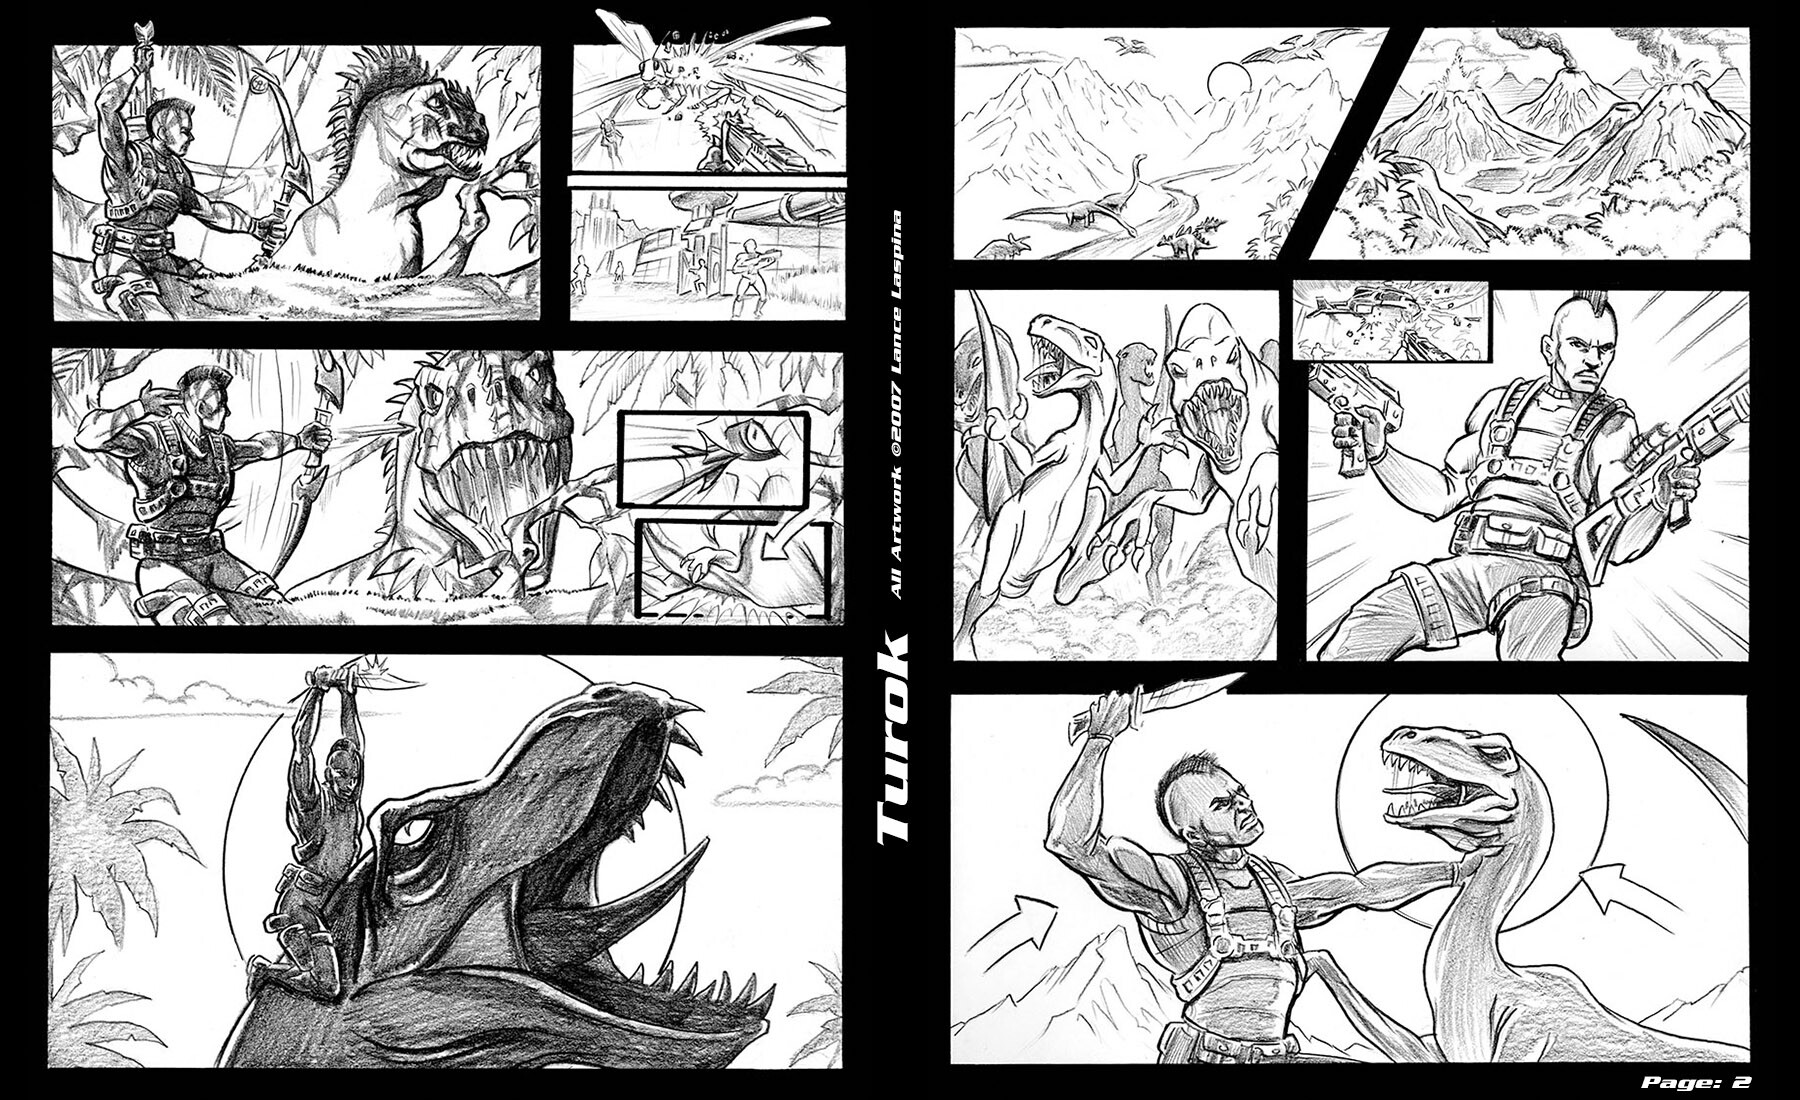 Lance laspina as storyboardsamples 24b